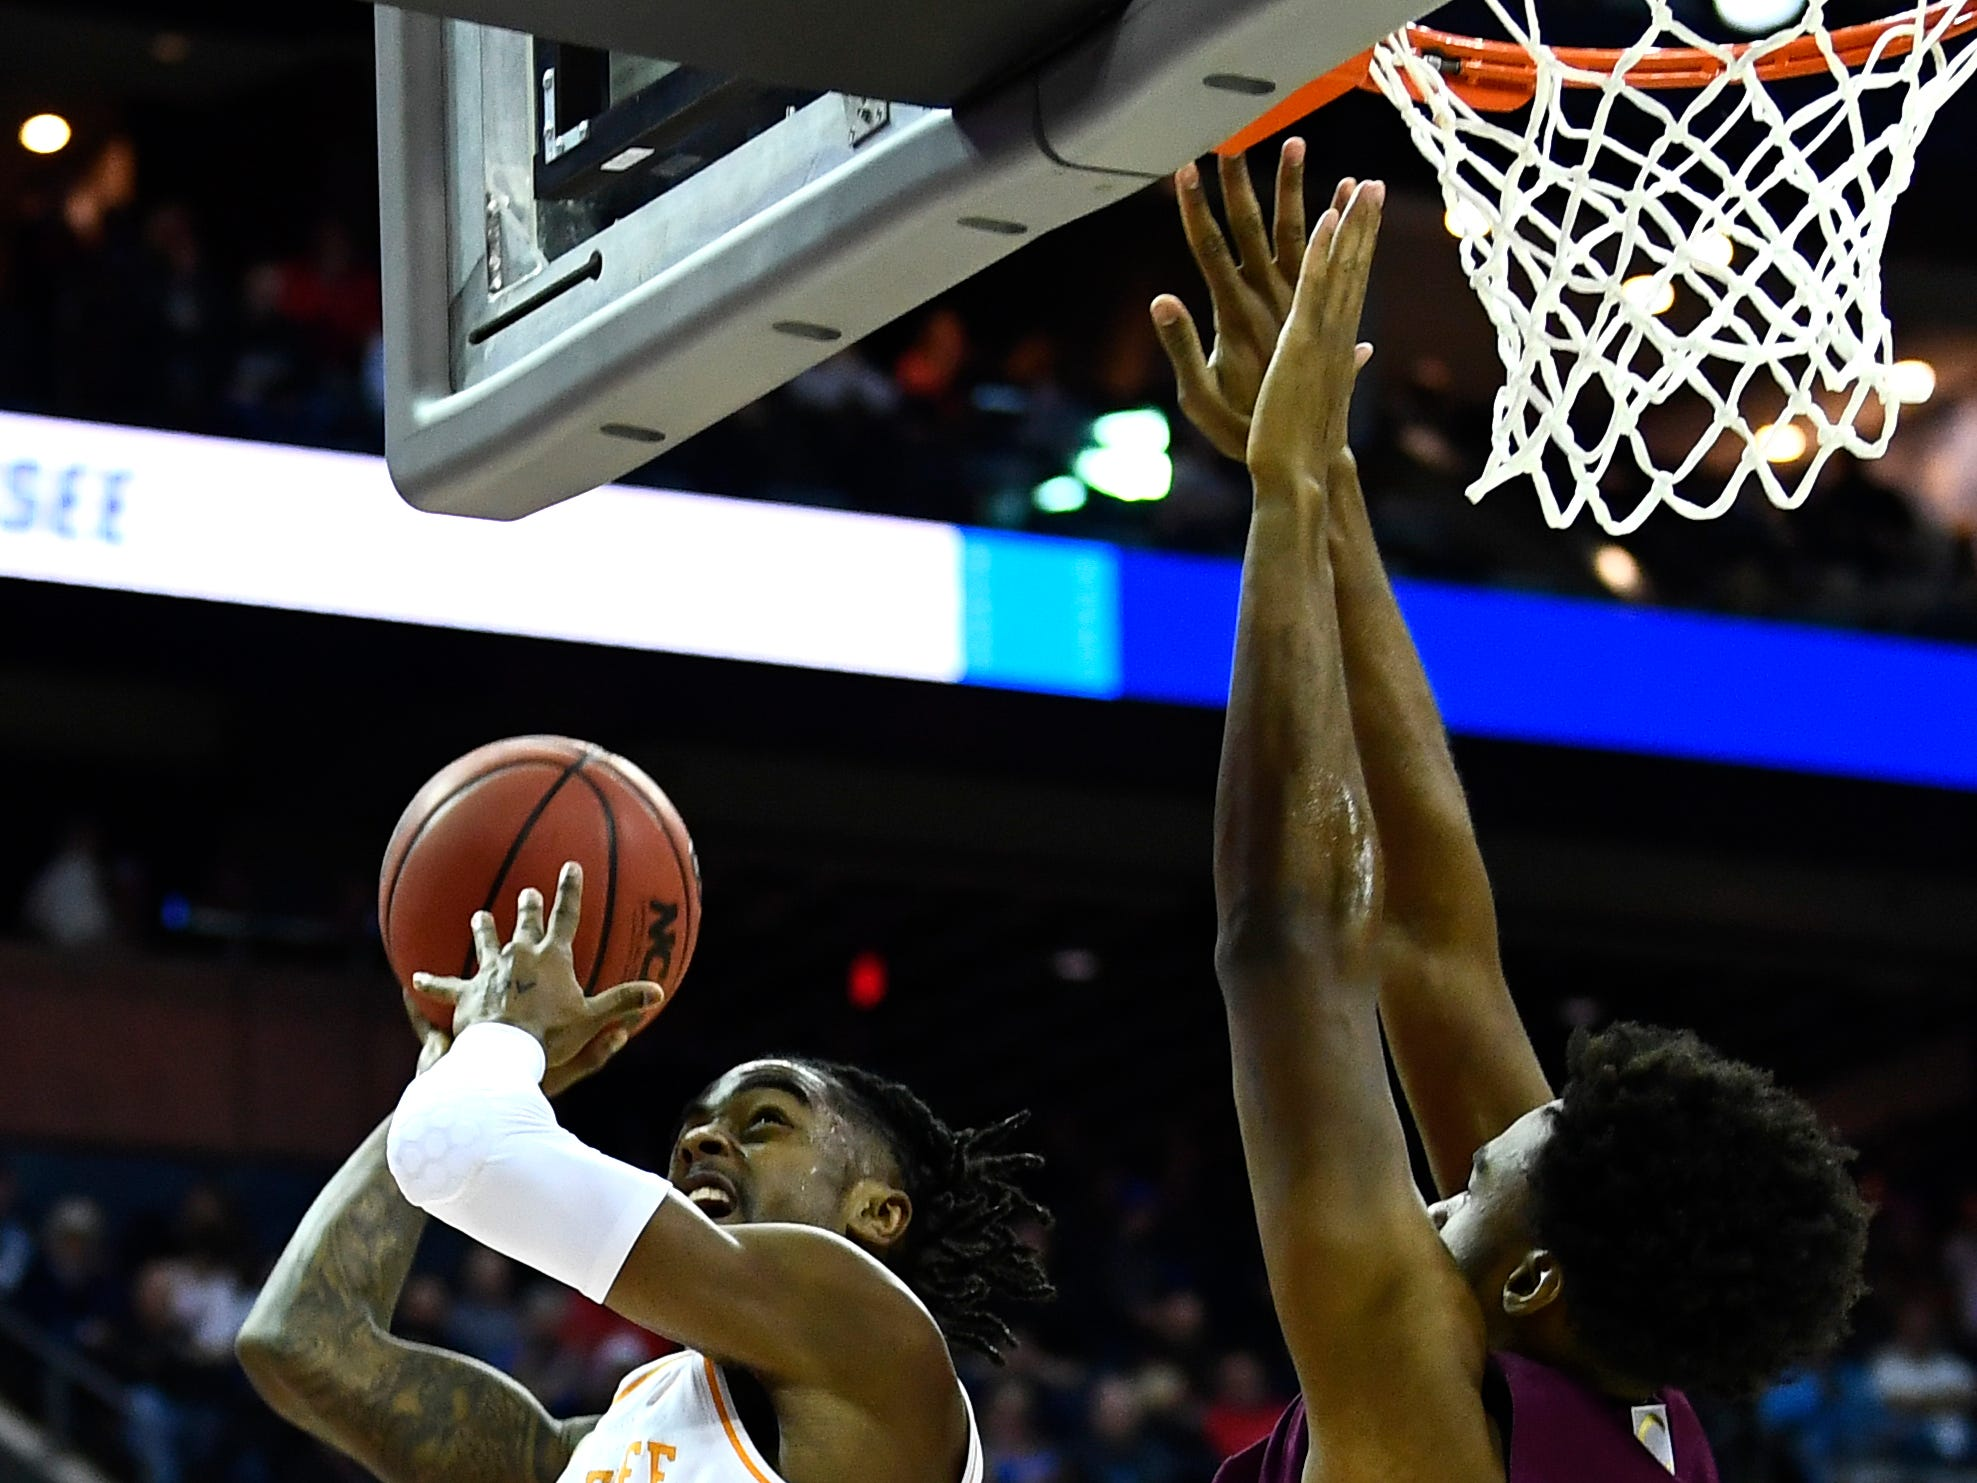 Tennessee guard Jordan Bone (0) goes for a layup defended by Colgate forward Malcolm Regisford (5) during their first round game in the NCAA Tournament at Nationwide Arena in Columbus, Ohio, on Friday, March 22, 2019.